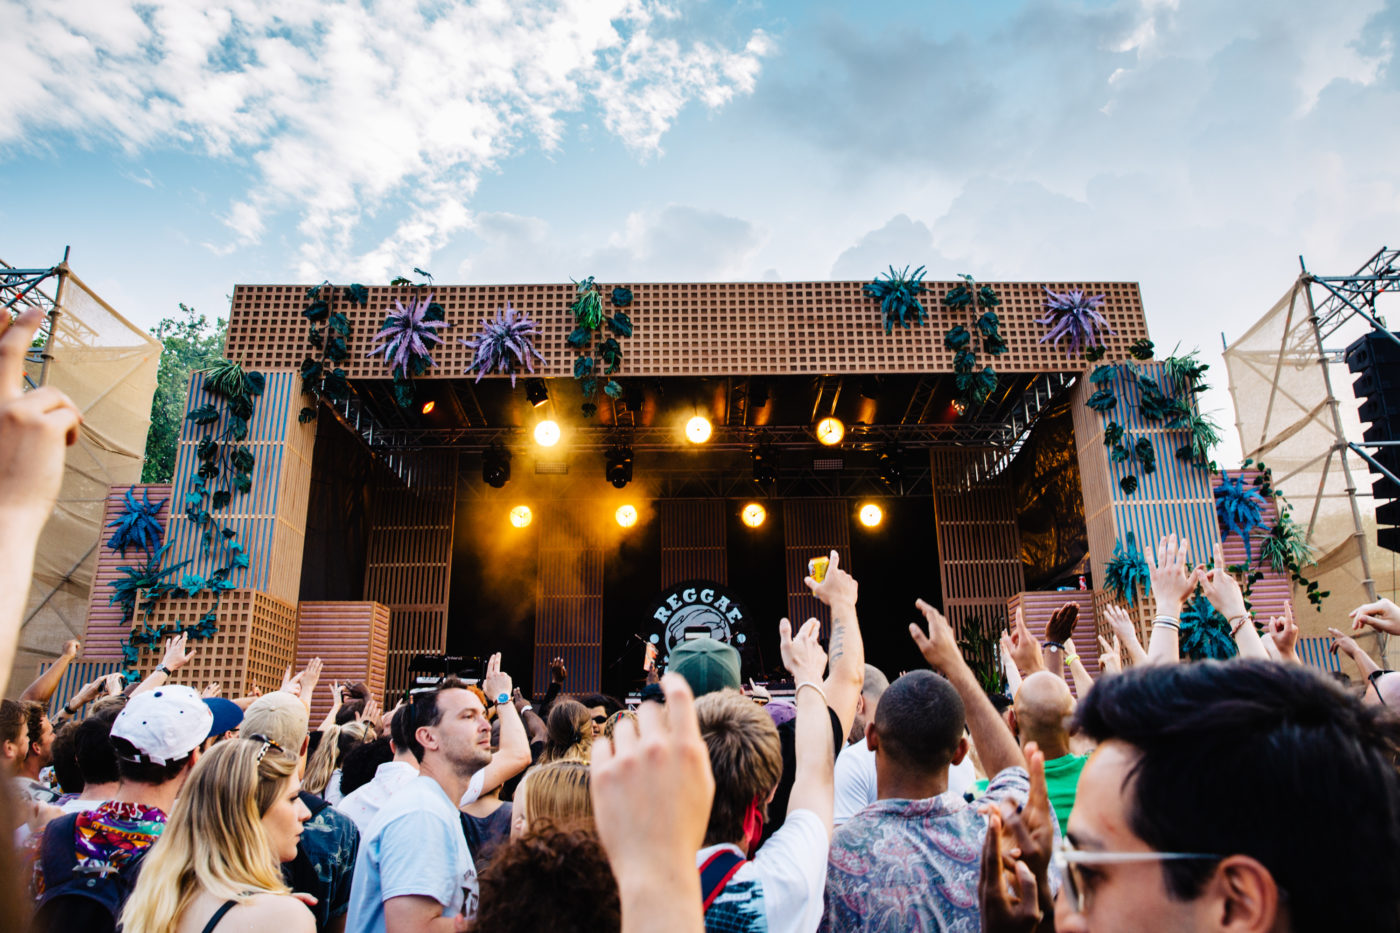 Image of a festival crowd with hands in the air with main stage in the background